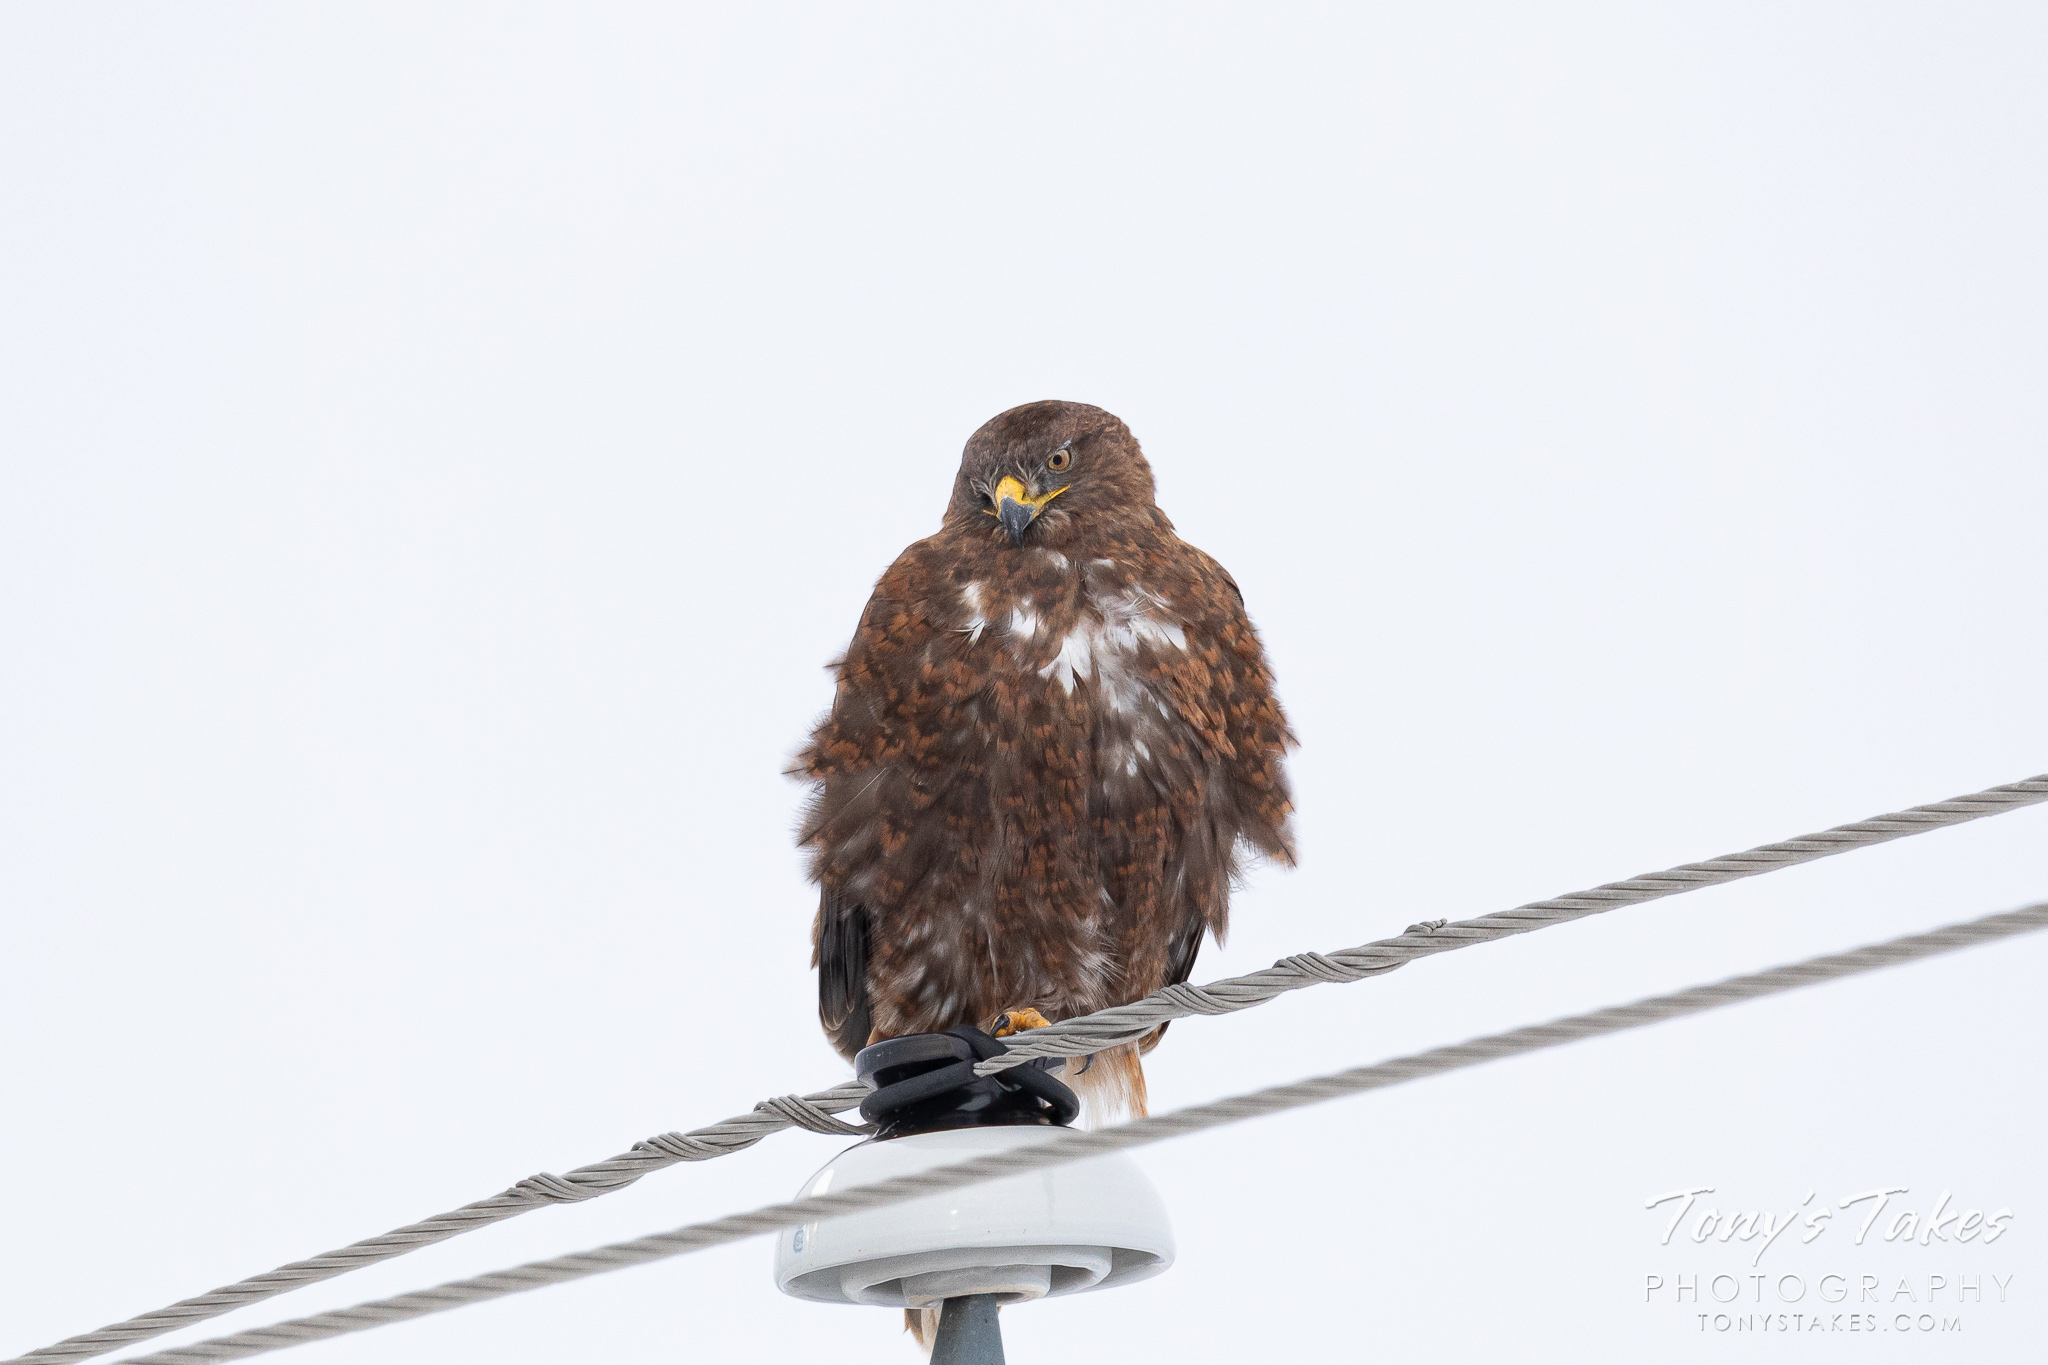 Dark morph ferruginous hawk waits for warmer weather